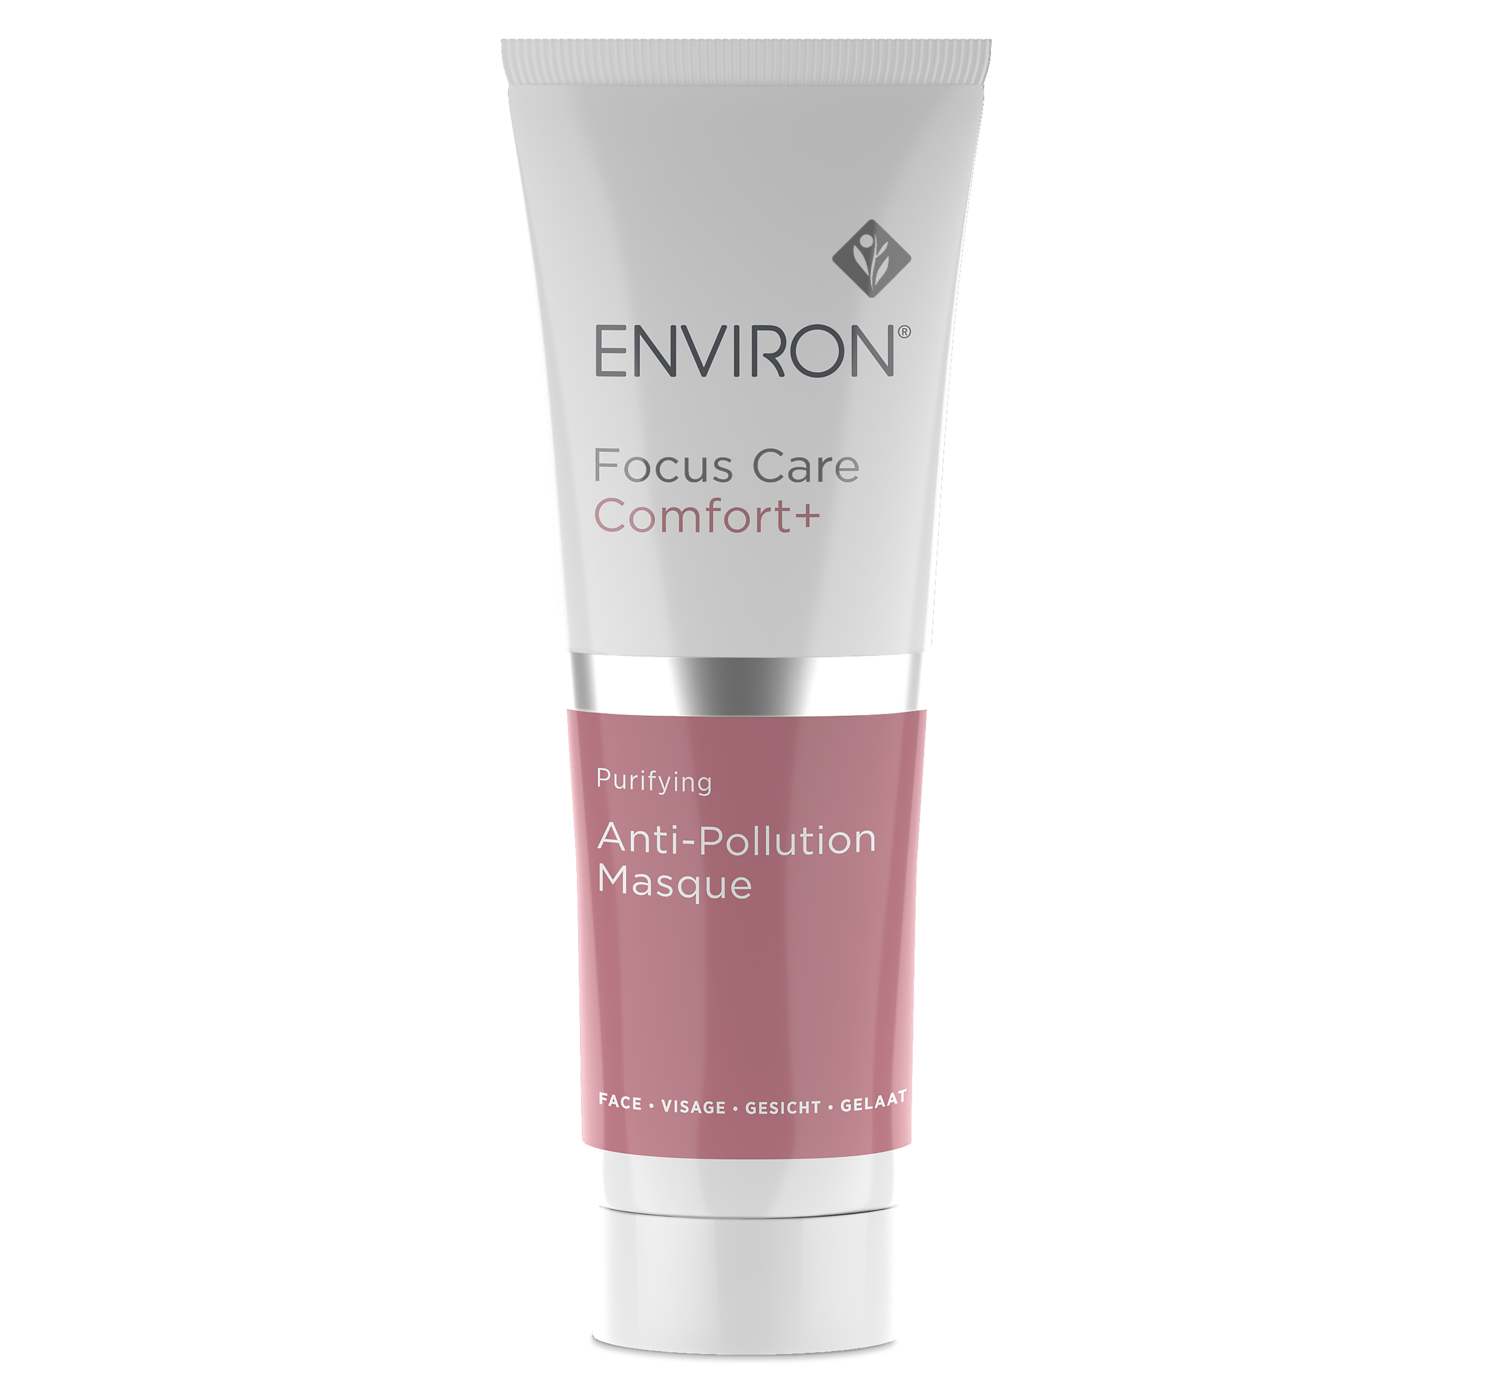 Anti-Pollution Masque